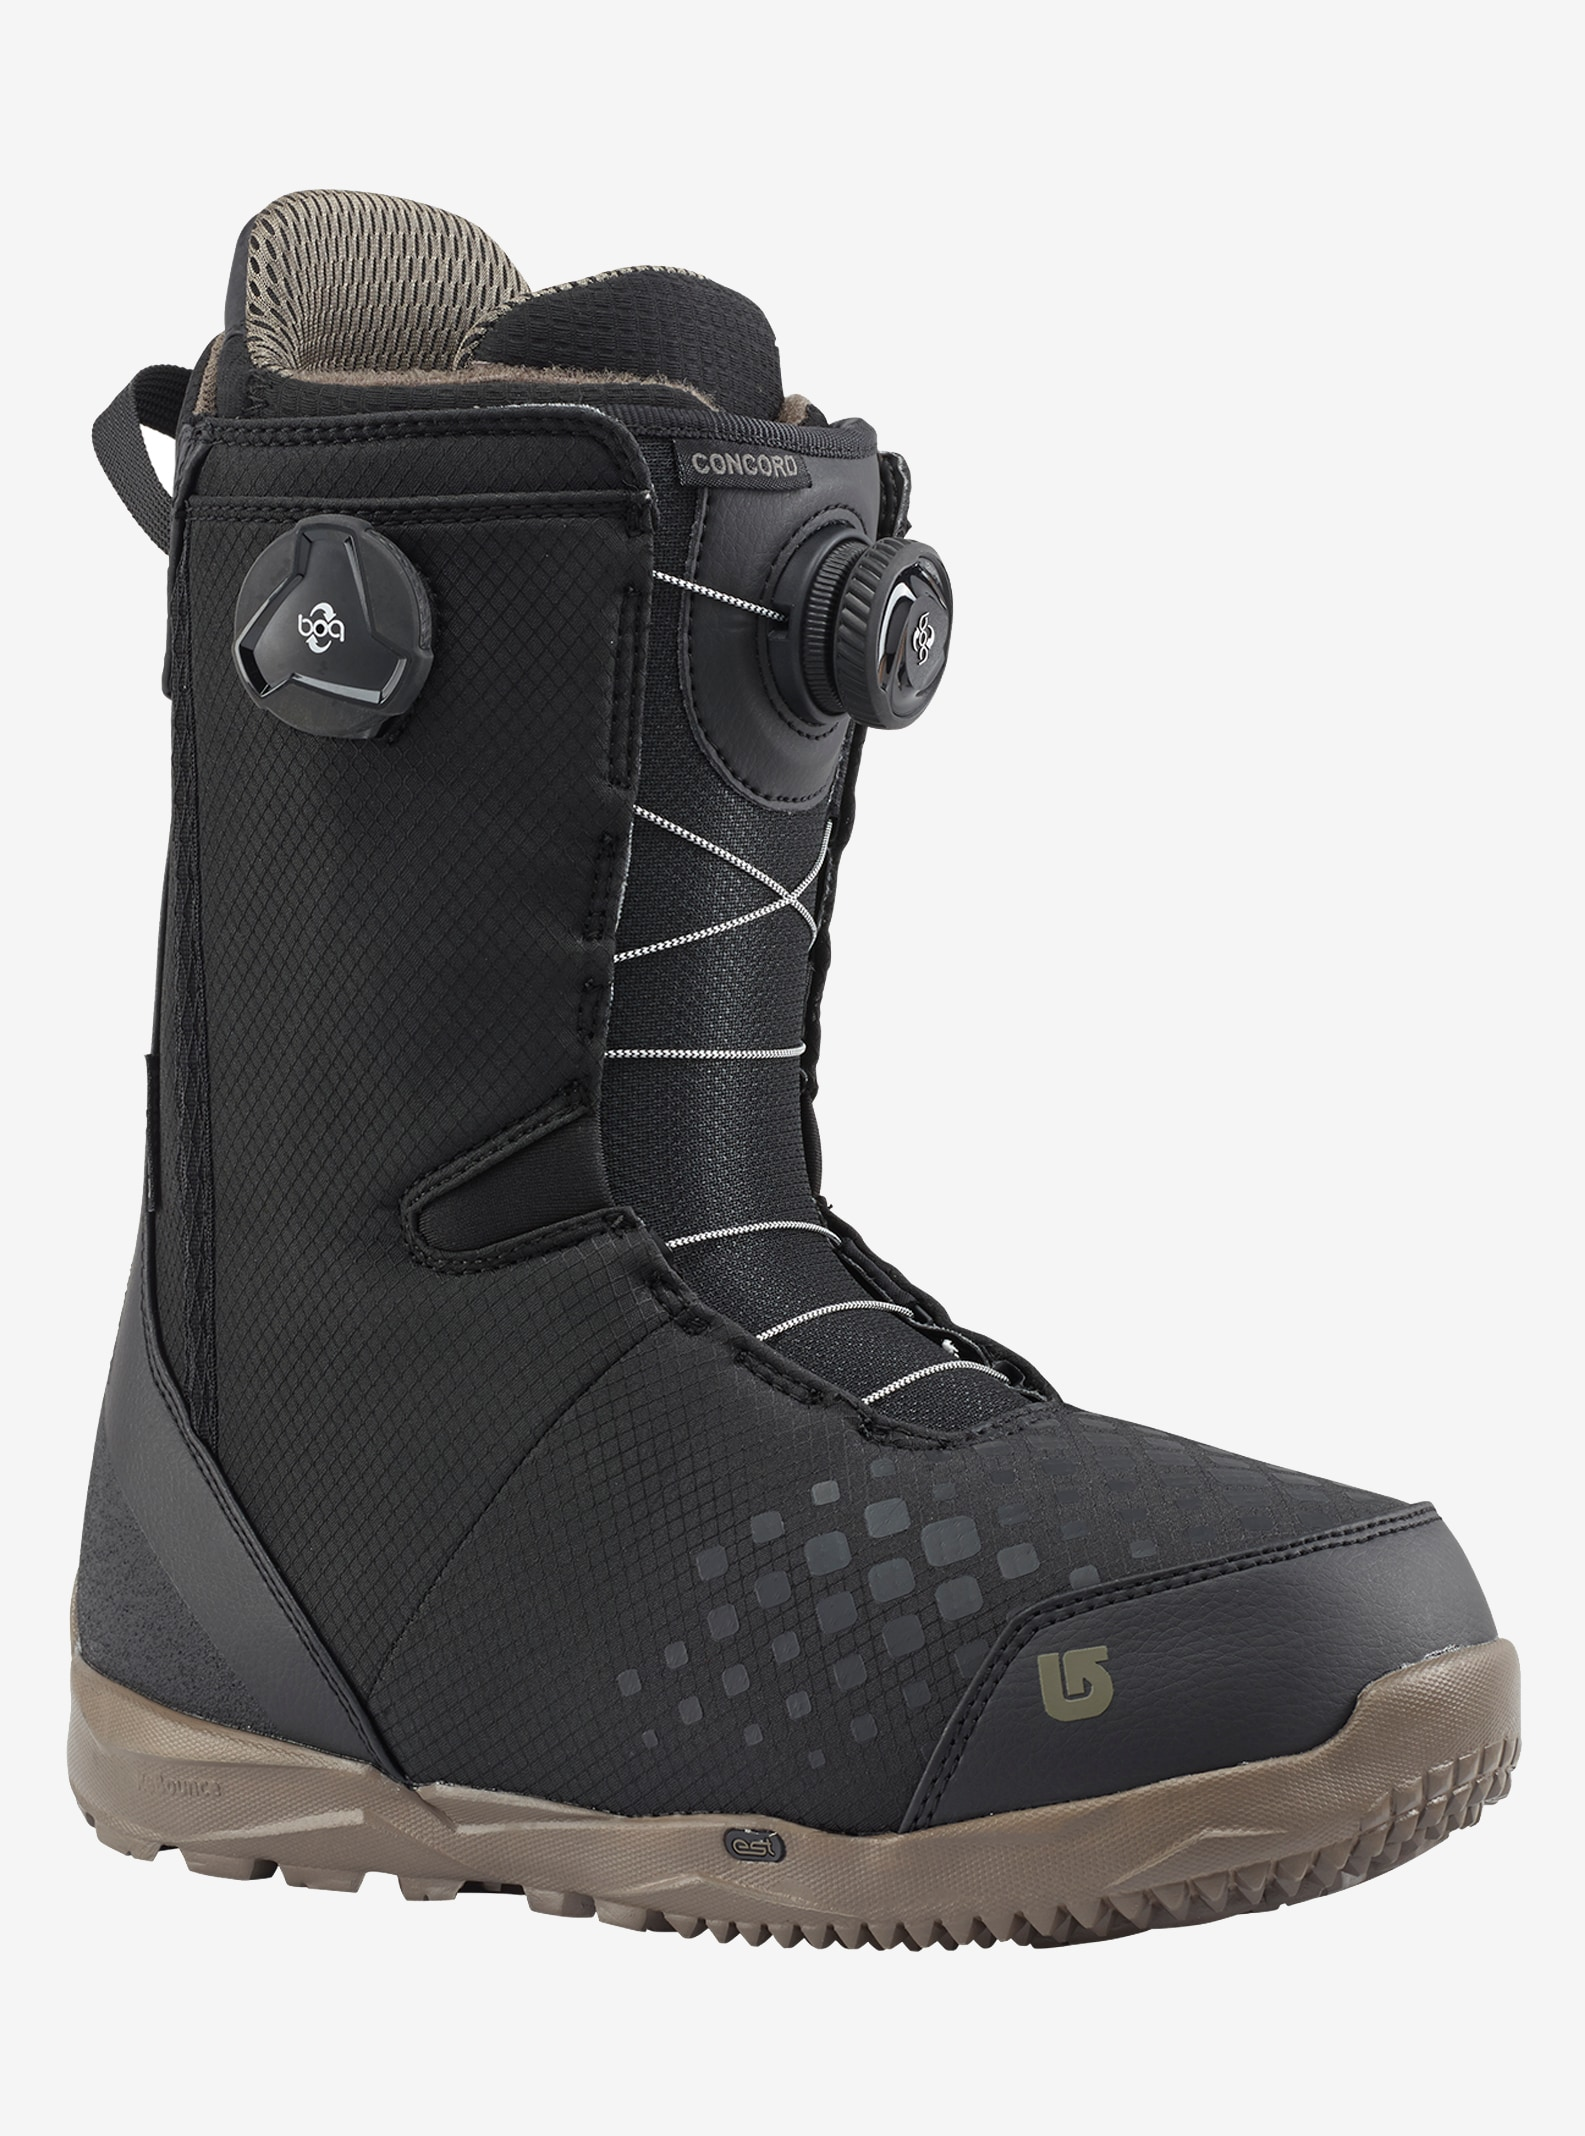 Men's Burton Concord Boa® Snowboard Boot shown in Black